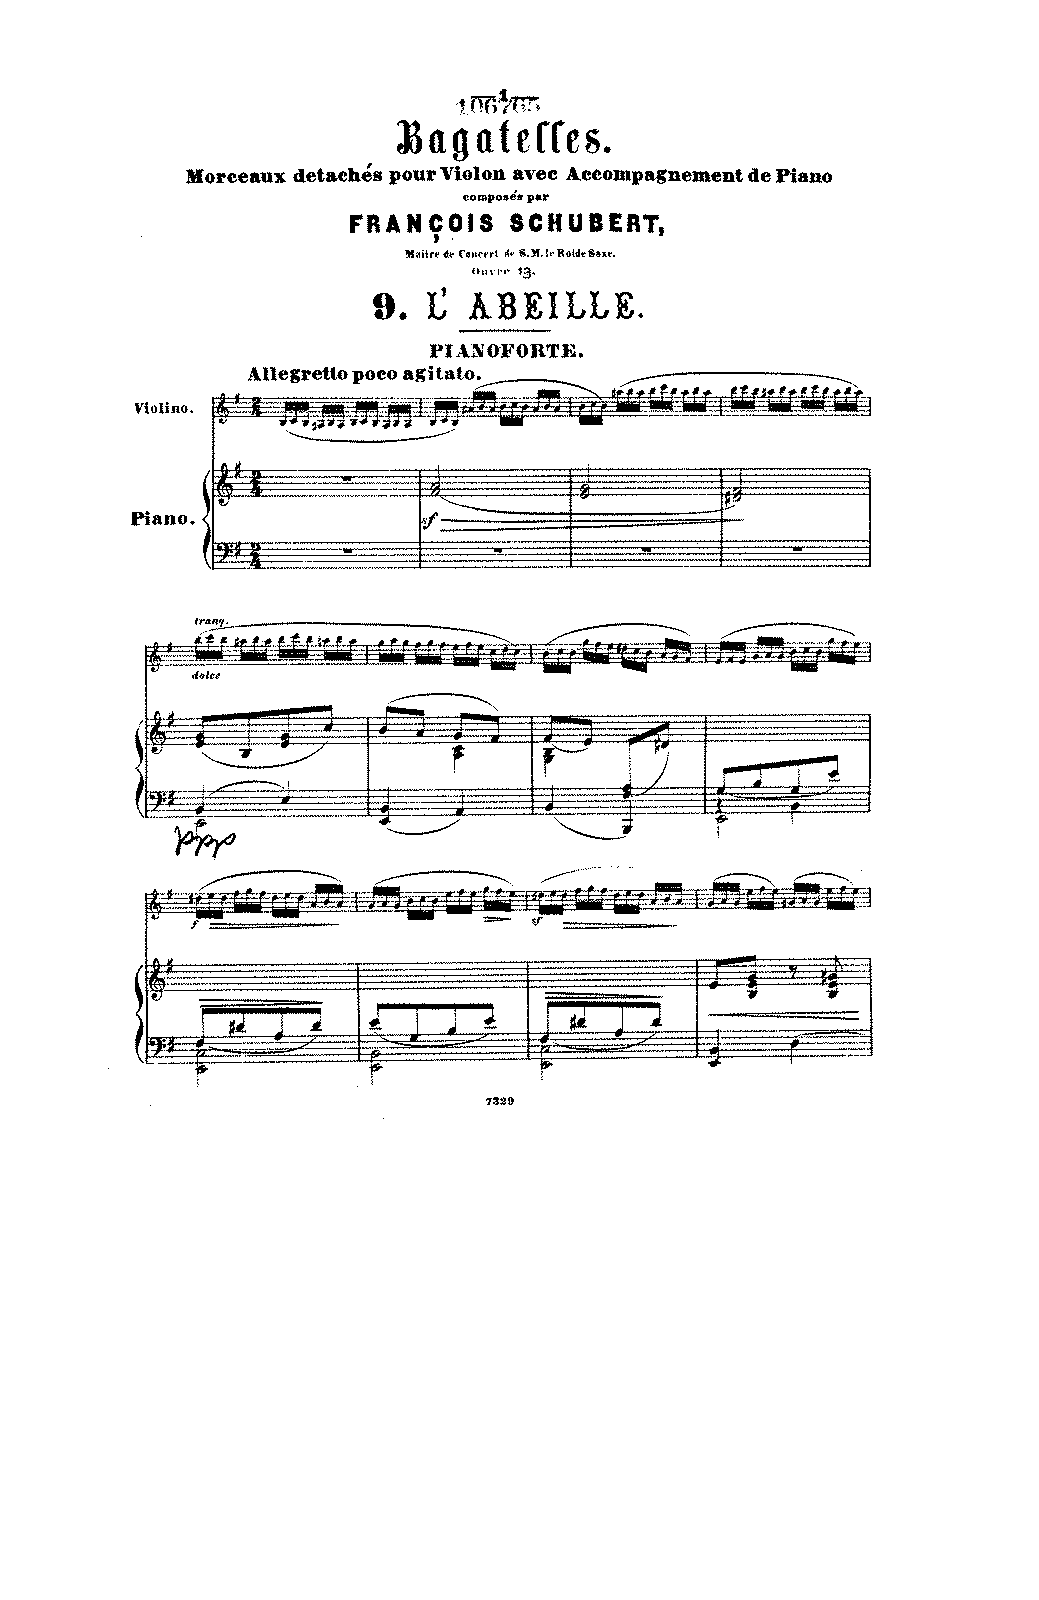 PMLP35283-Schubert - L' abeille (Die Biene The Bee) Bagatelle Op13 No9 (Roth) for Cello and Piano score.pdf